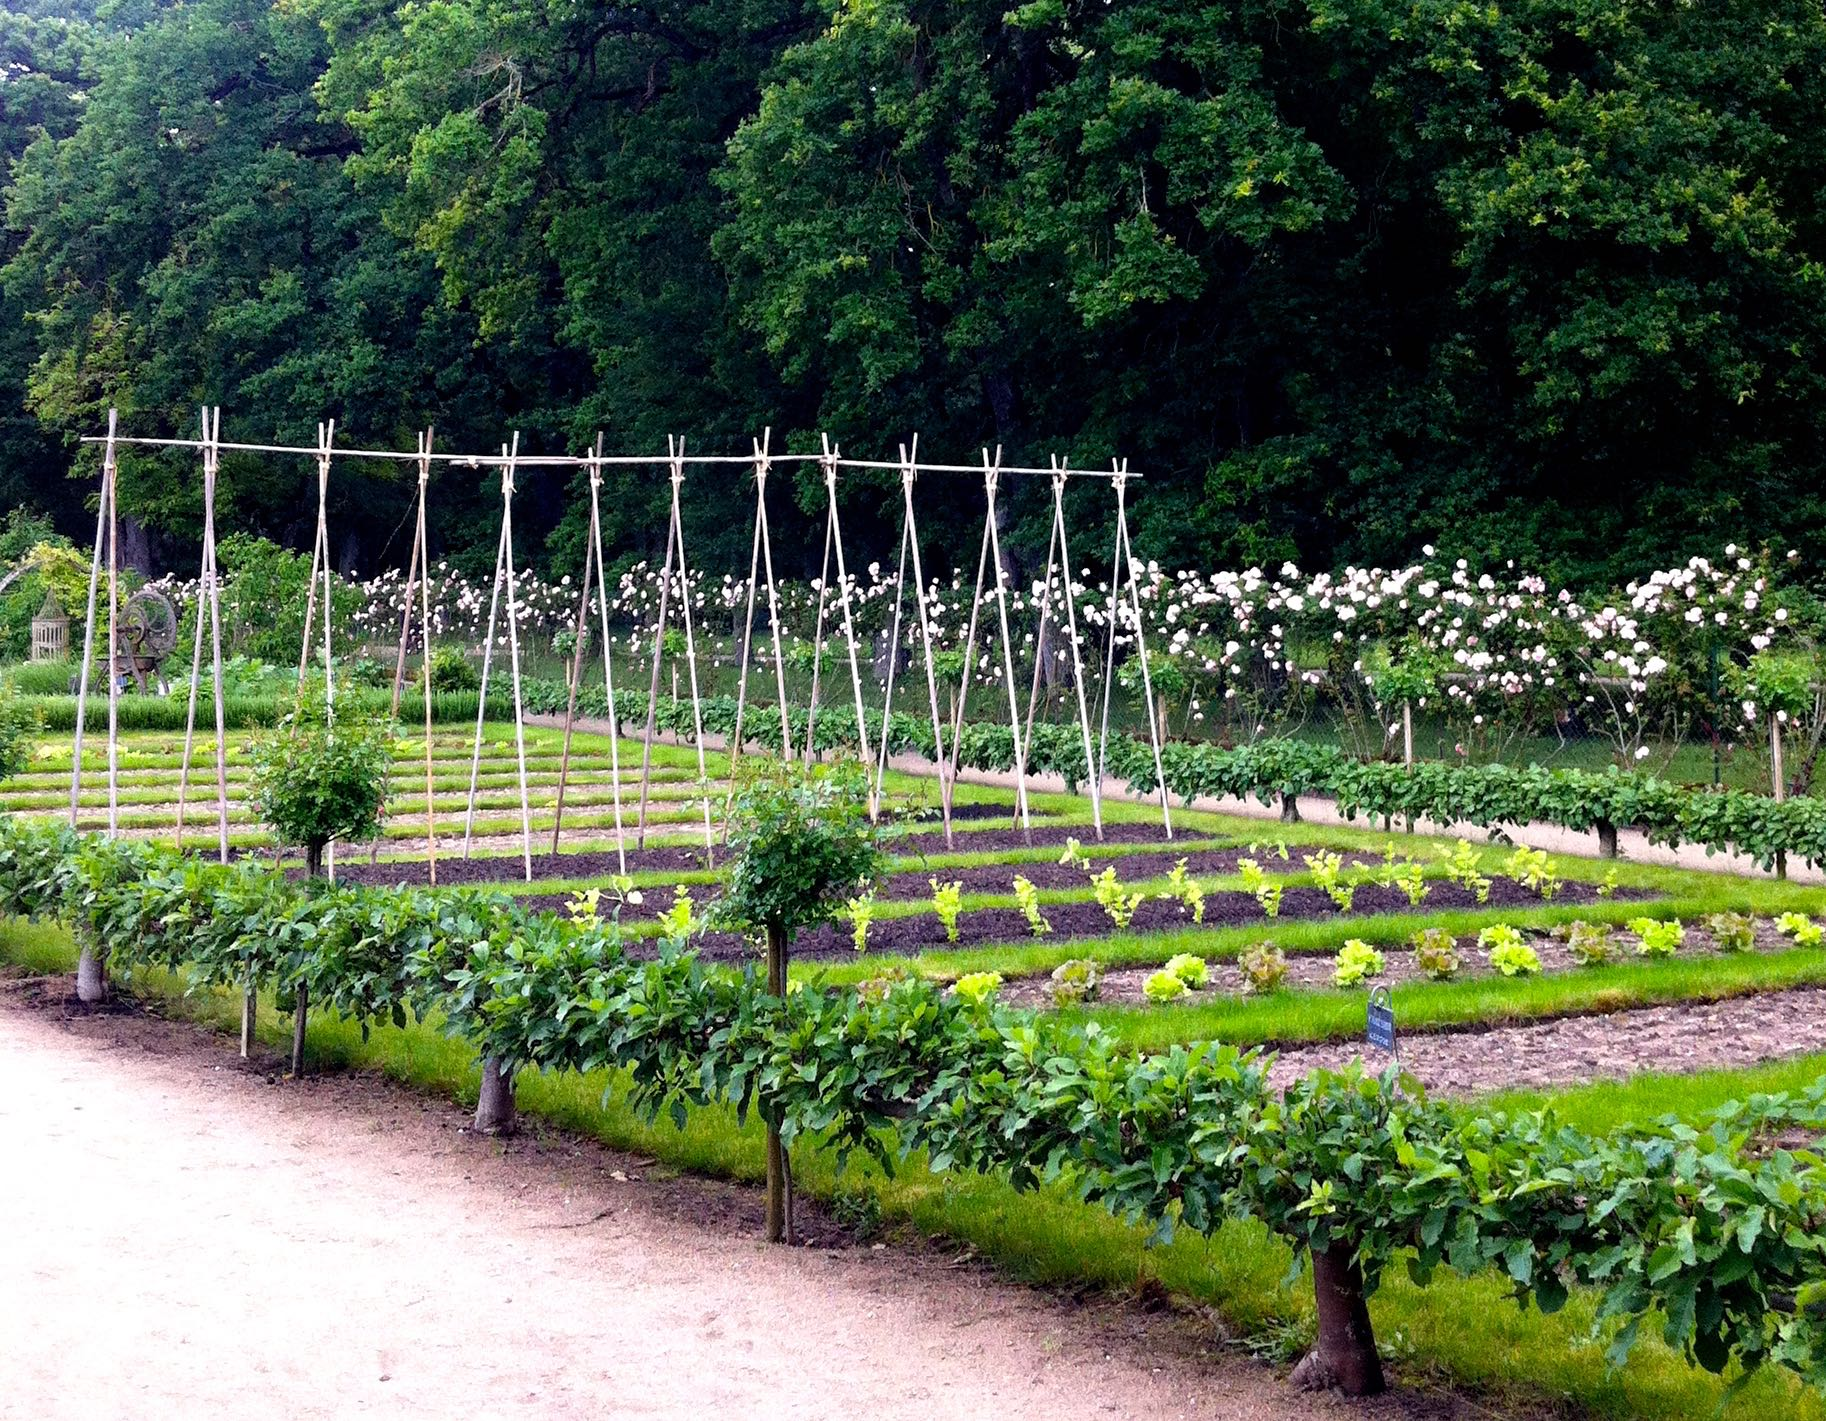 My first glimpse of the orderly flower and vegetable garden at chateau de chenonceau